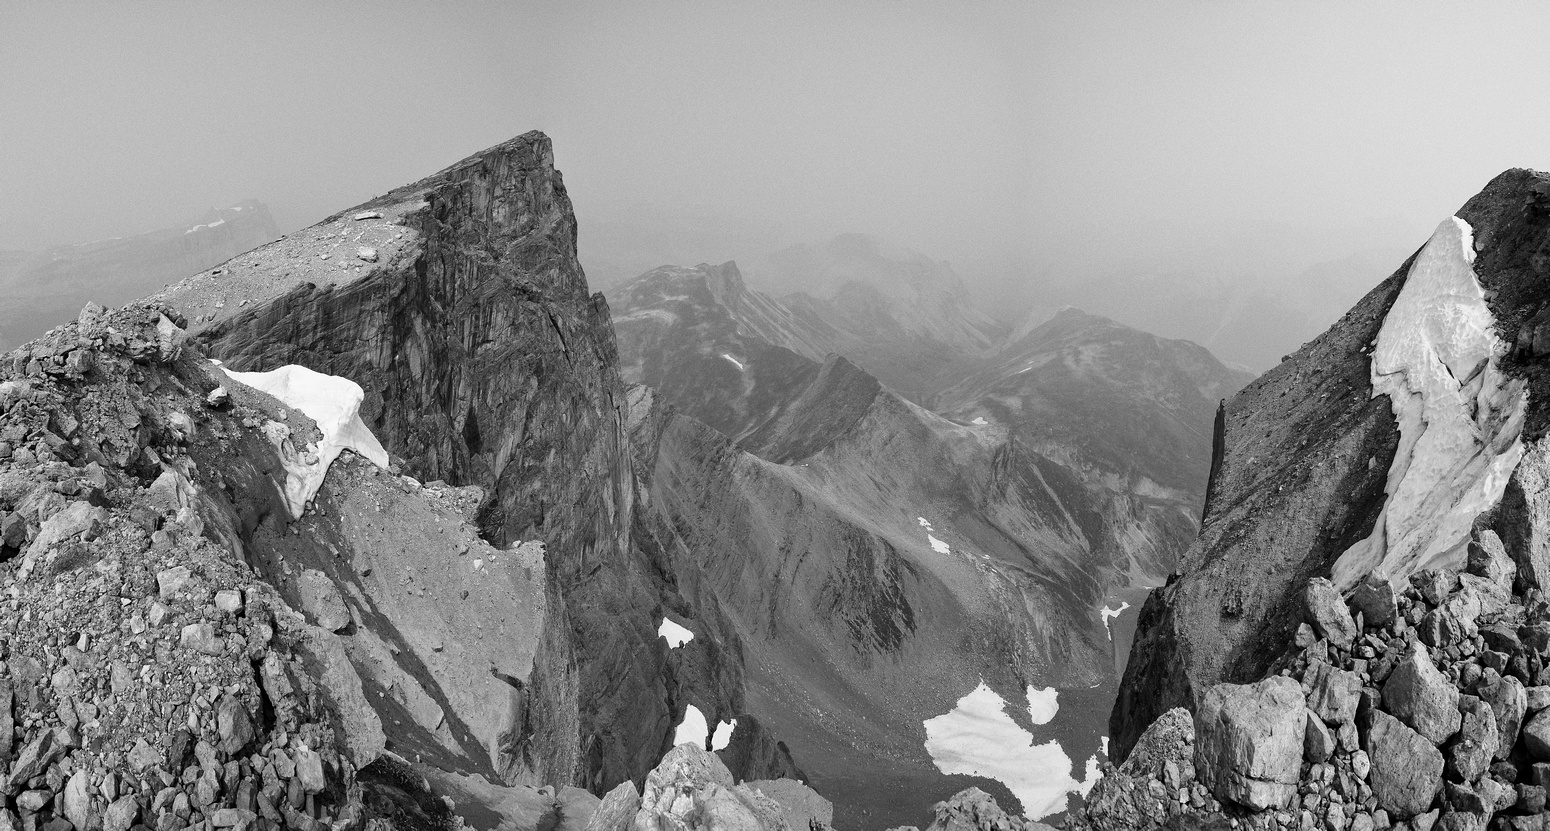 Looking back at the summit (L) and the false summit (R).